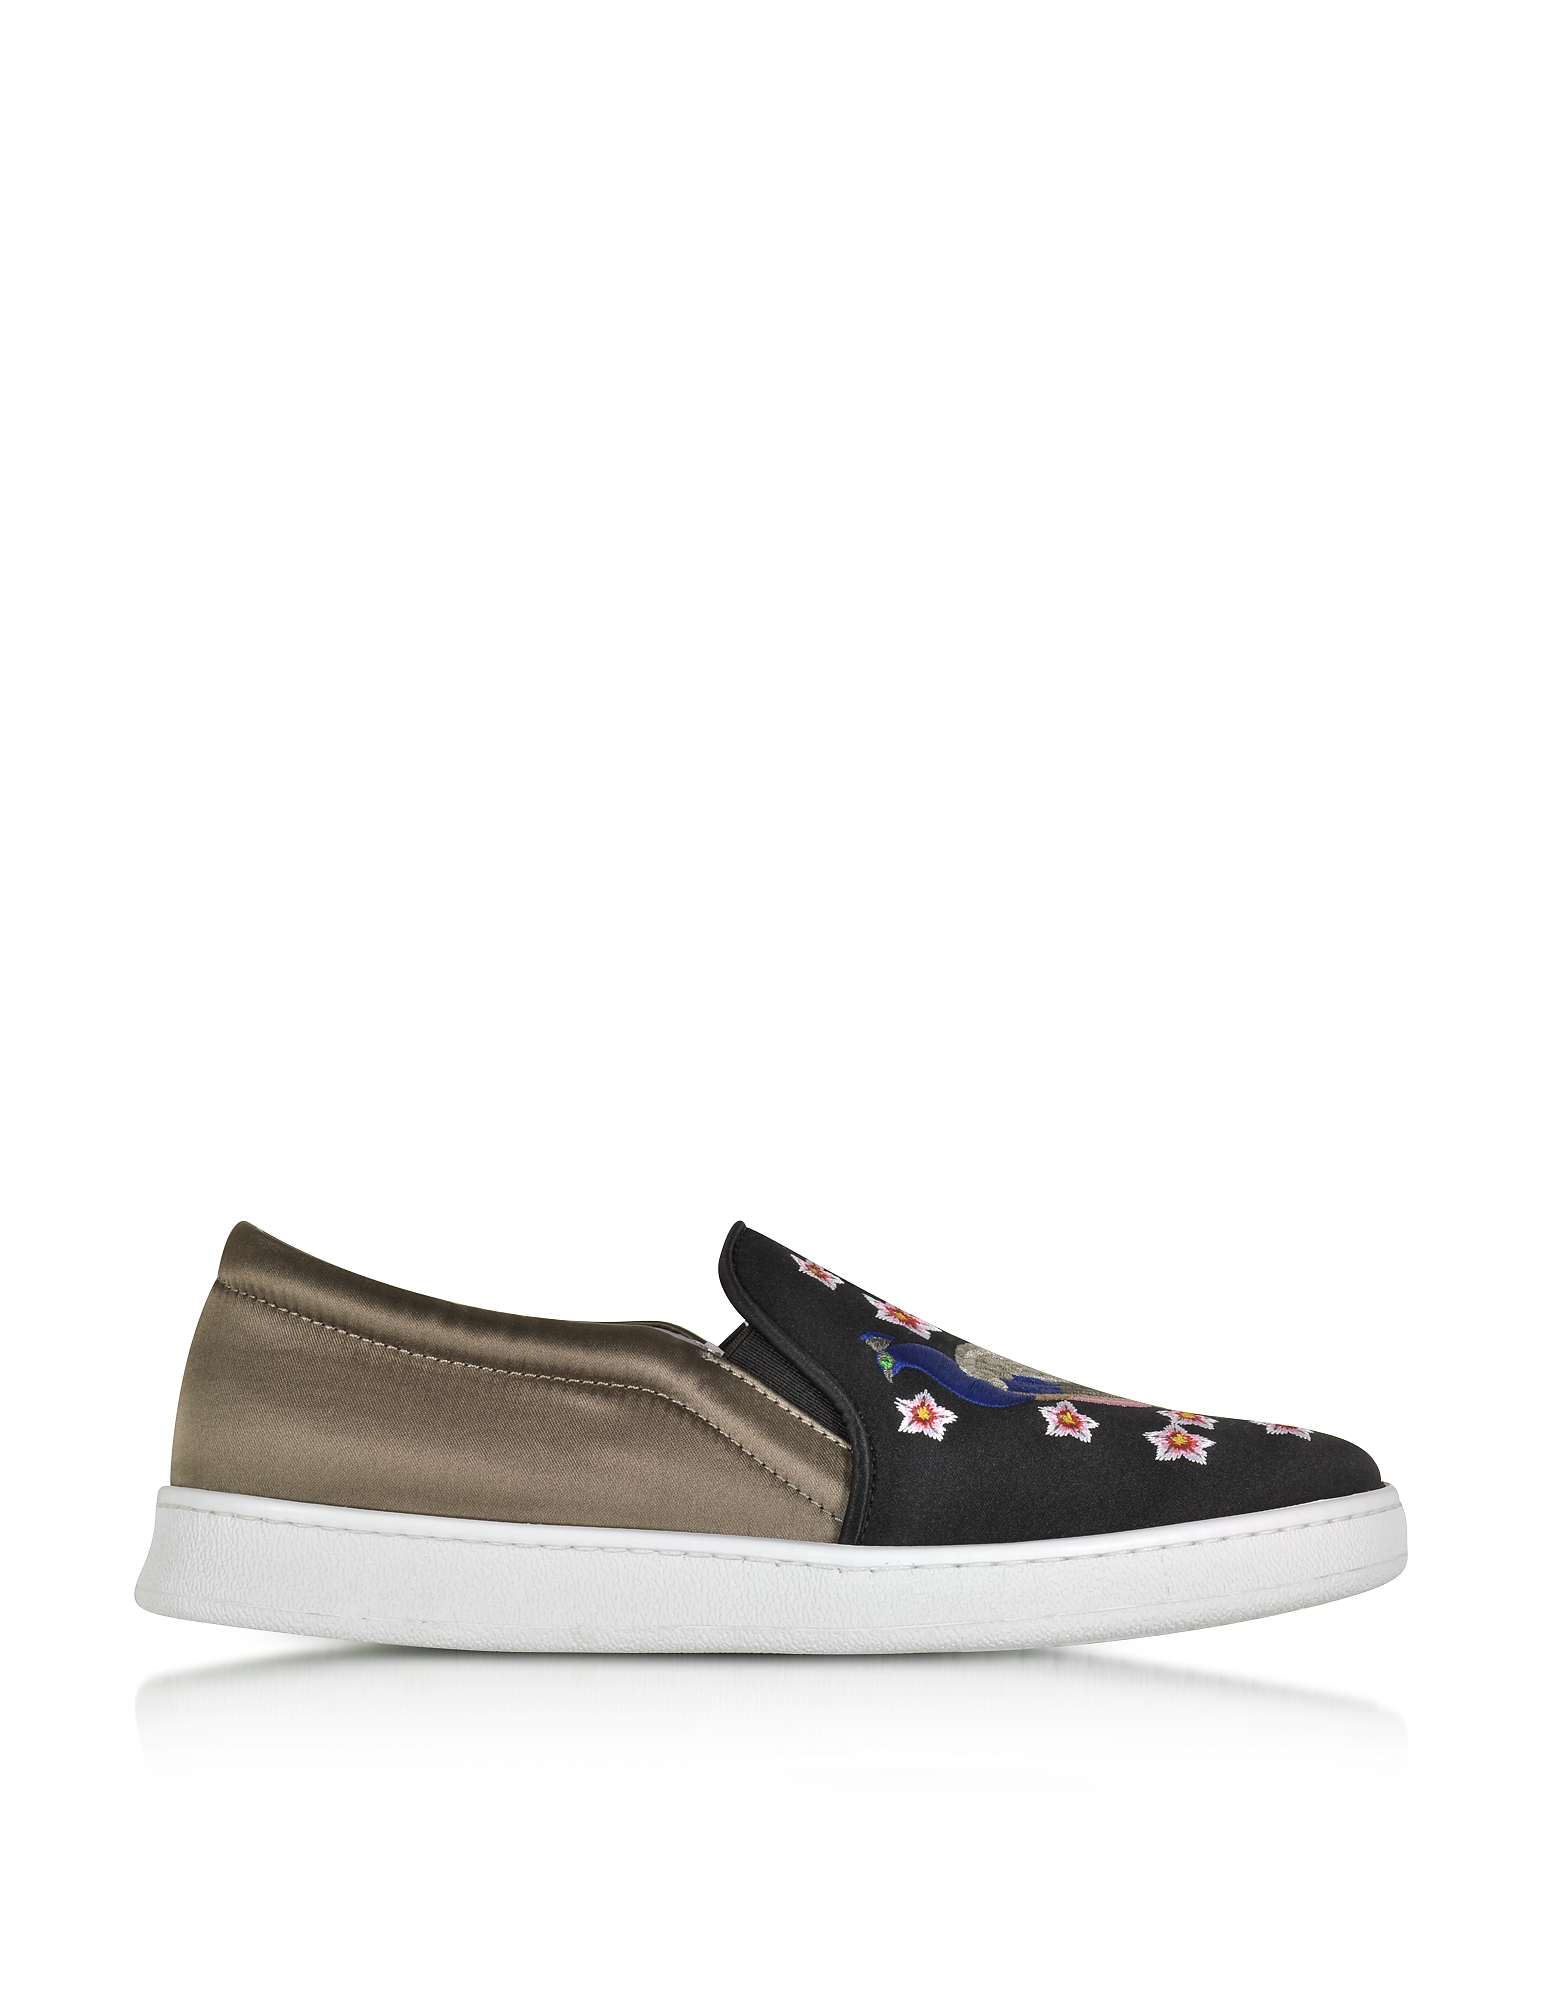 Joshua Sanders Shoes, Peacock Multicolor Fabric Slip-on Sneaker